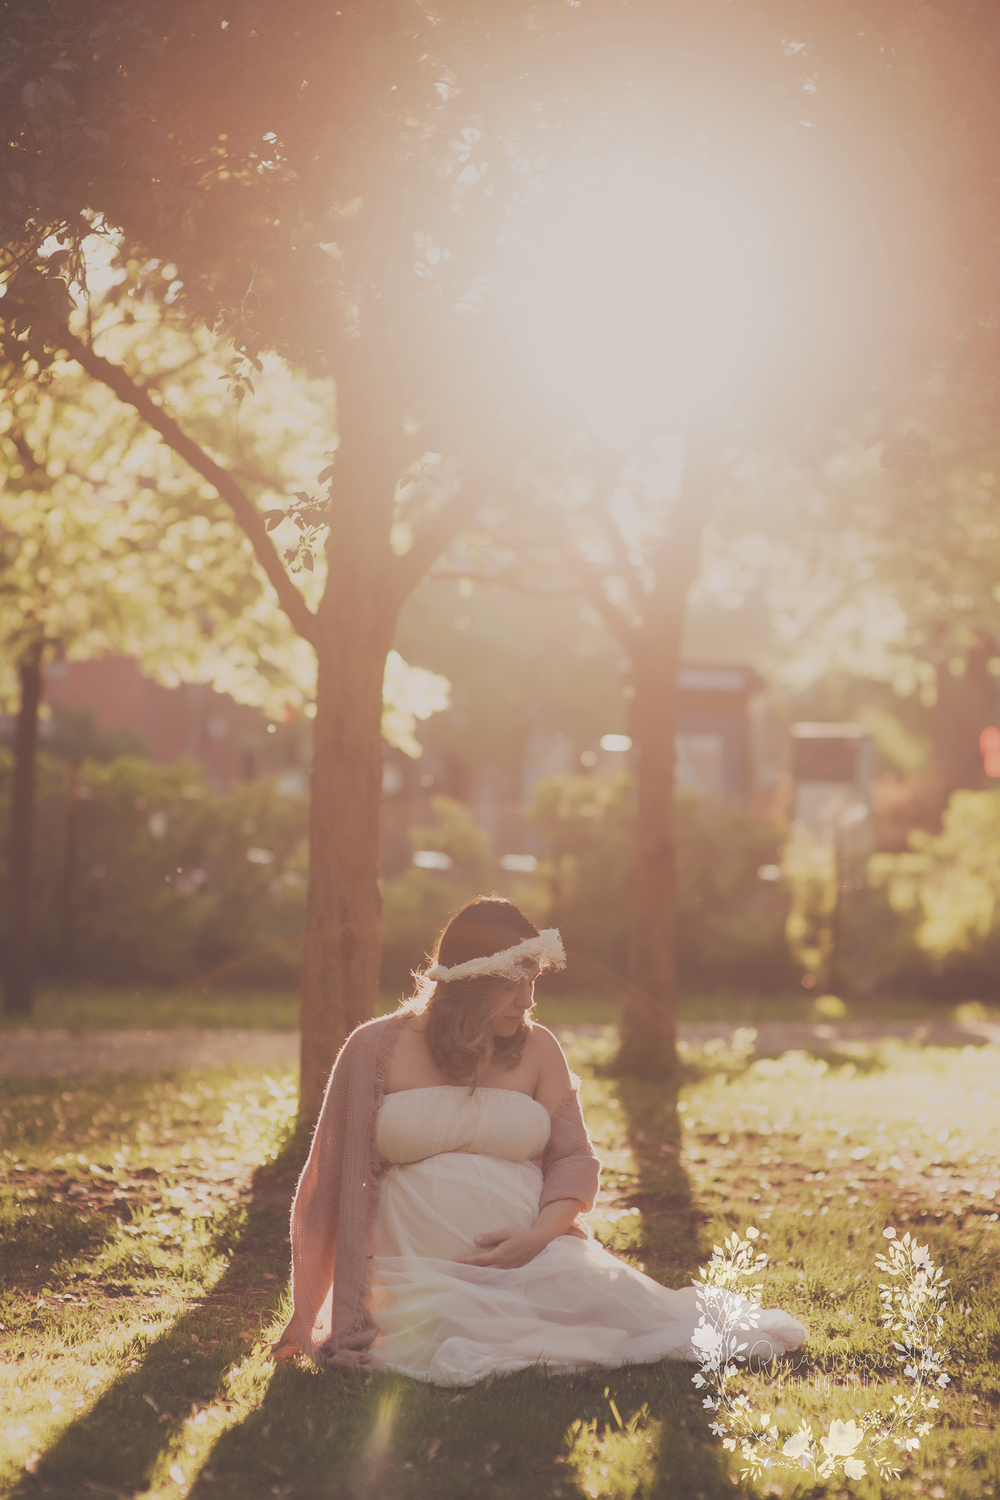 maternity-newborn-montreal-photos-fine-art-photographer-09.png